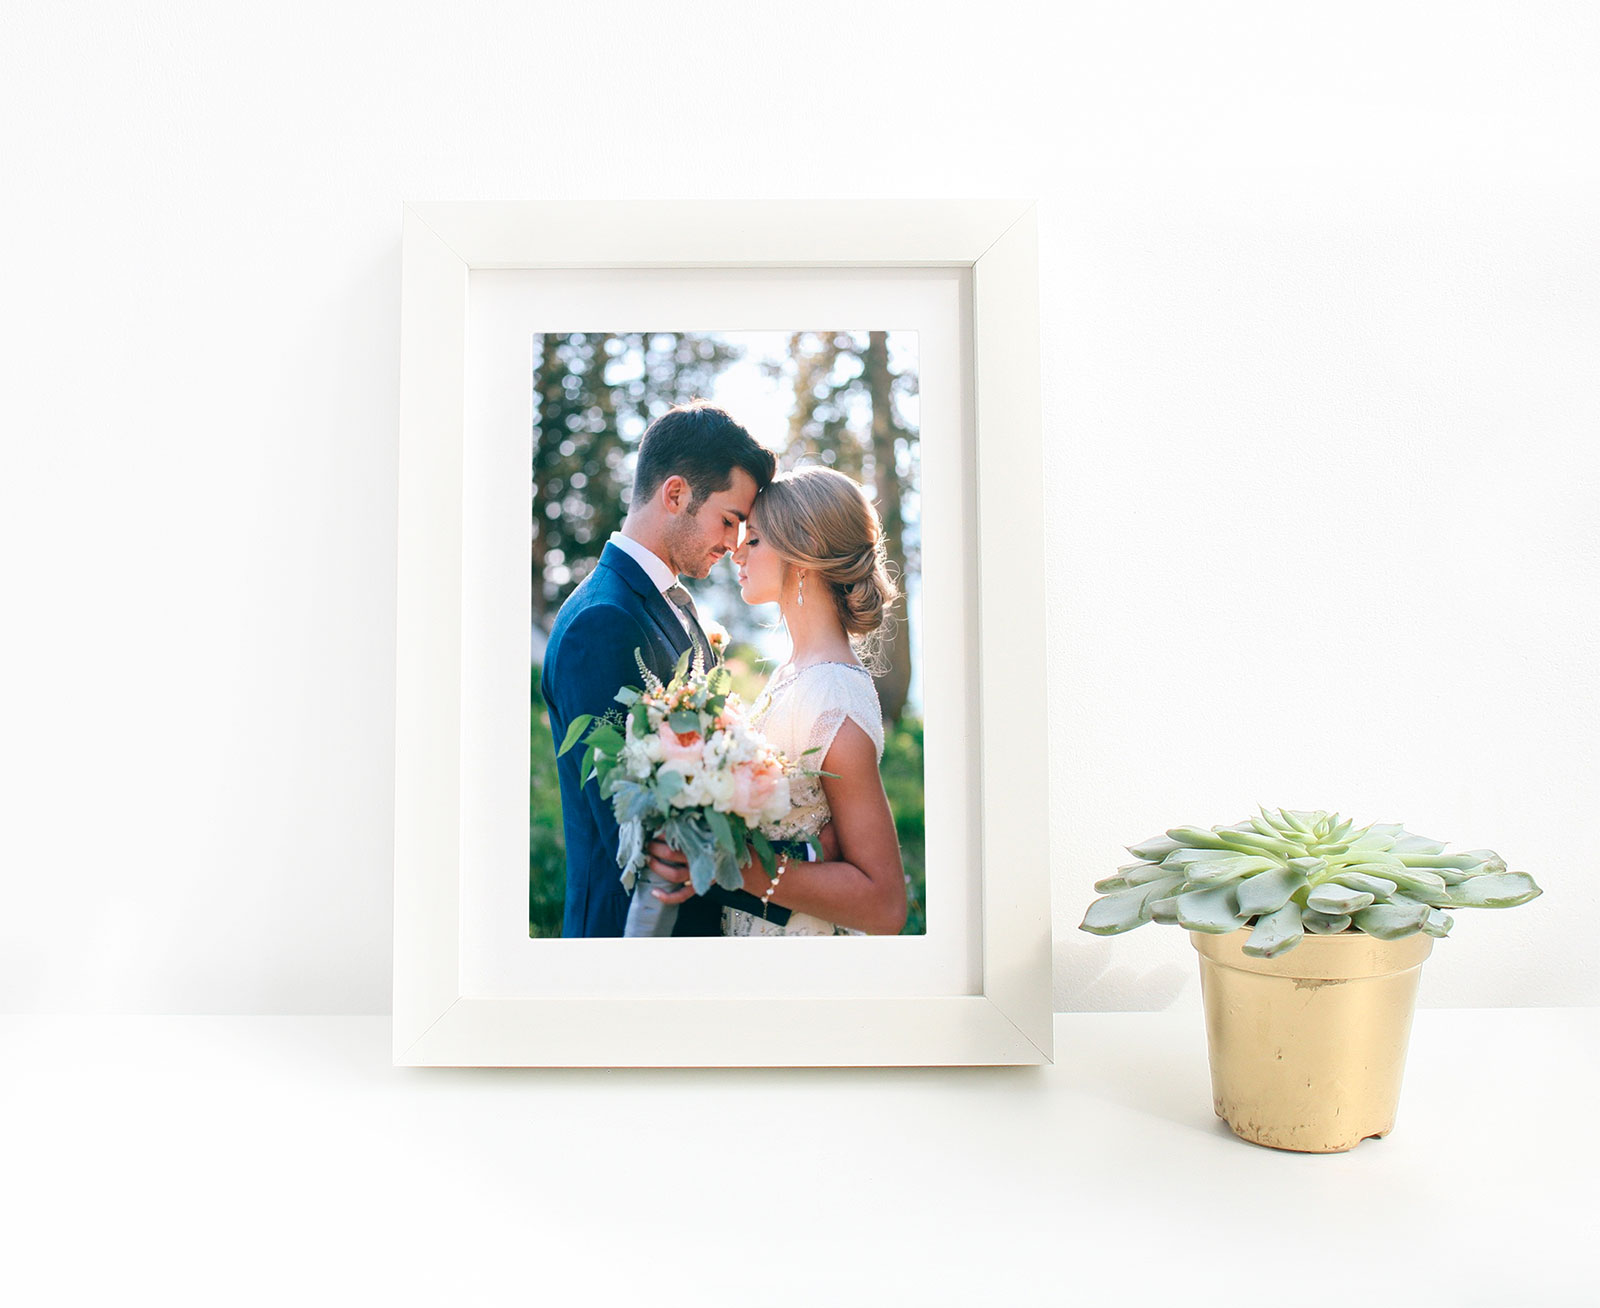 Free Picture Frame Mockup PSD for Wedding Photos & Lettering ...